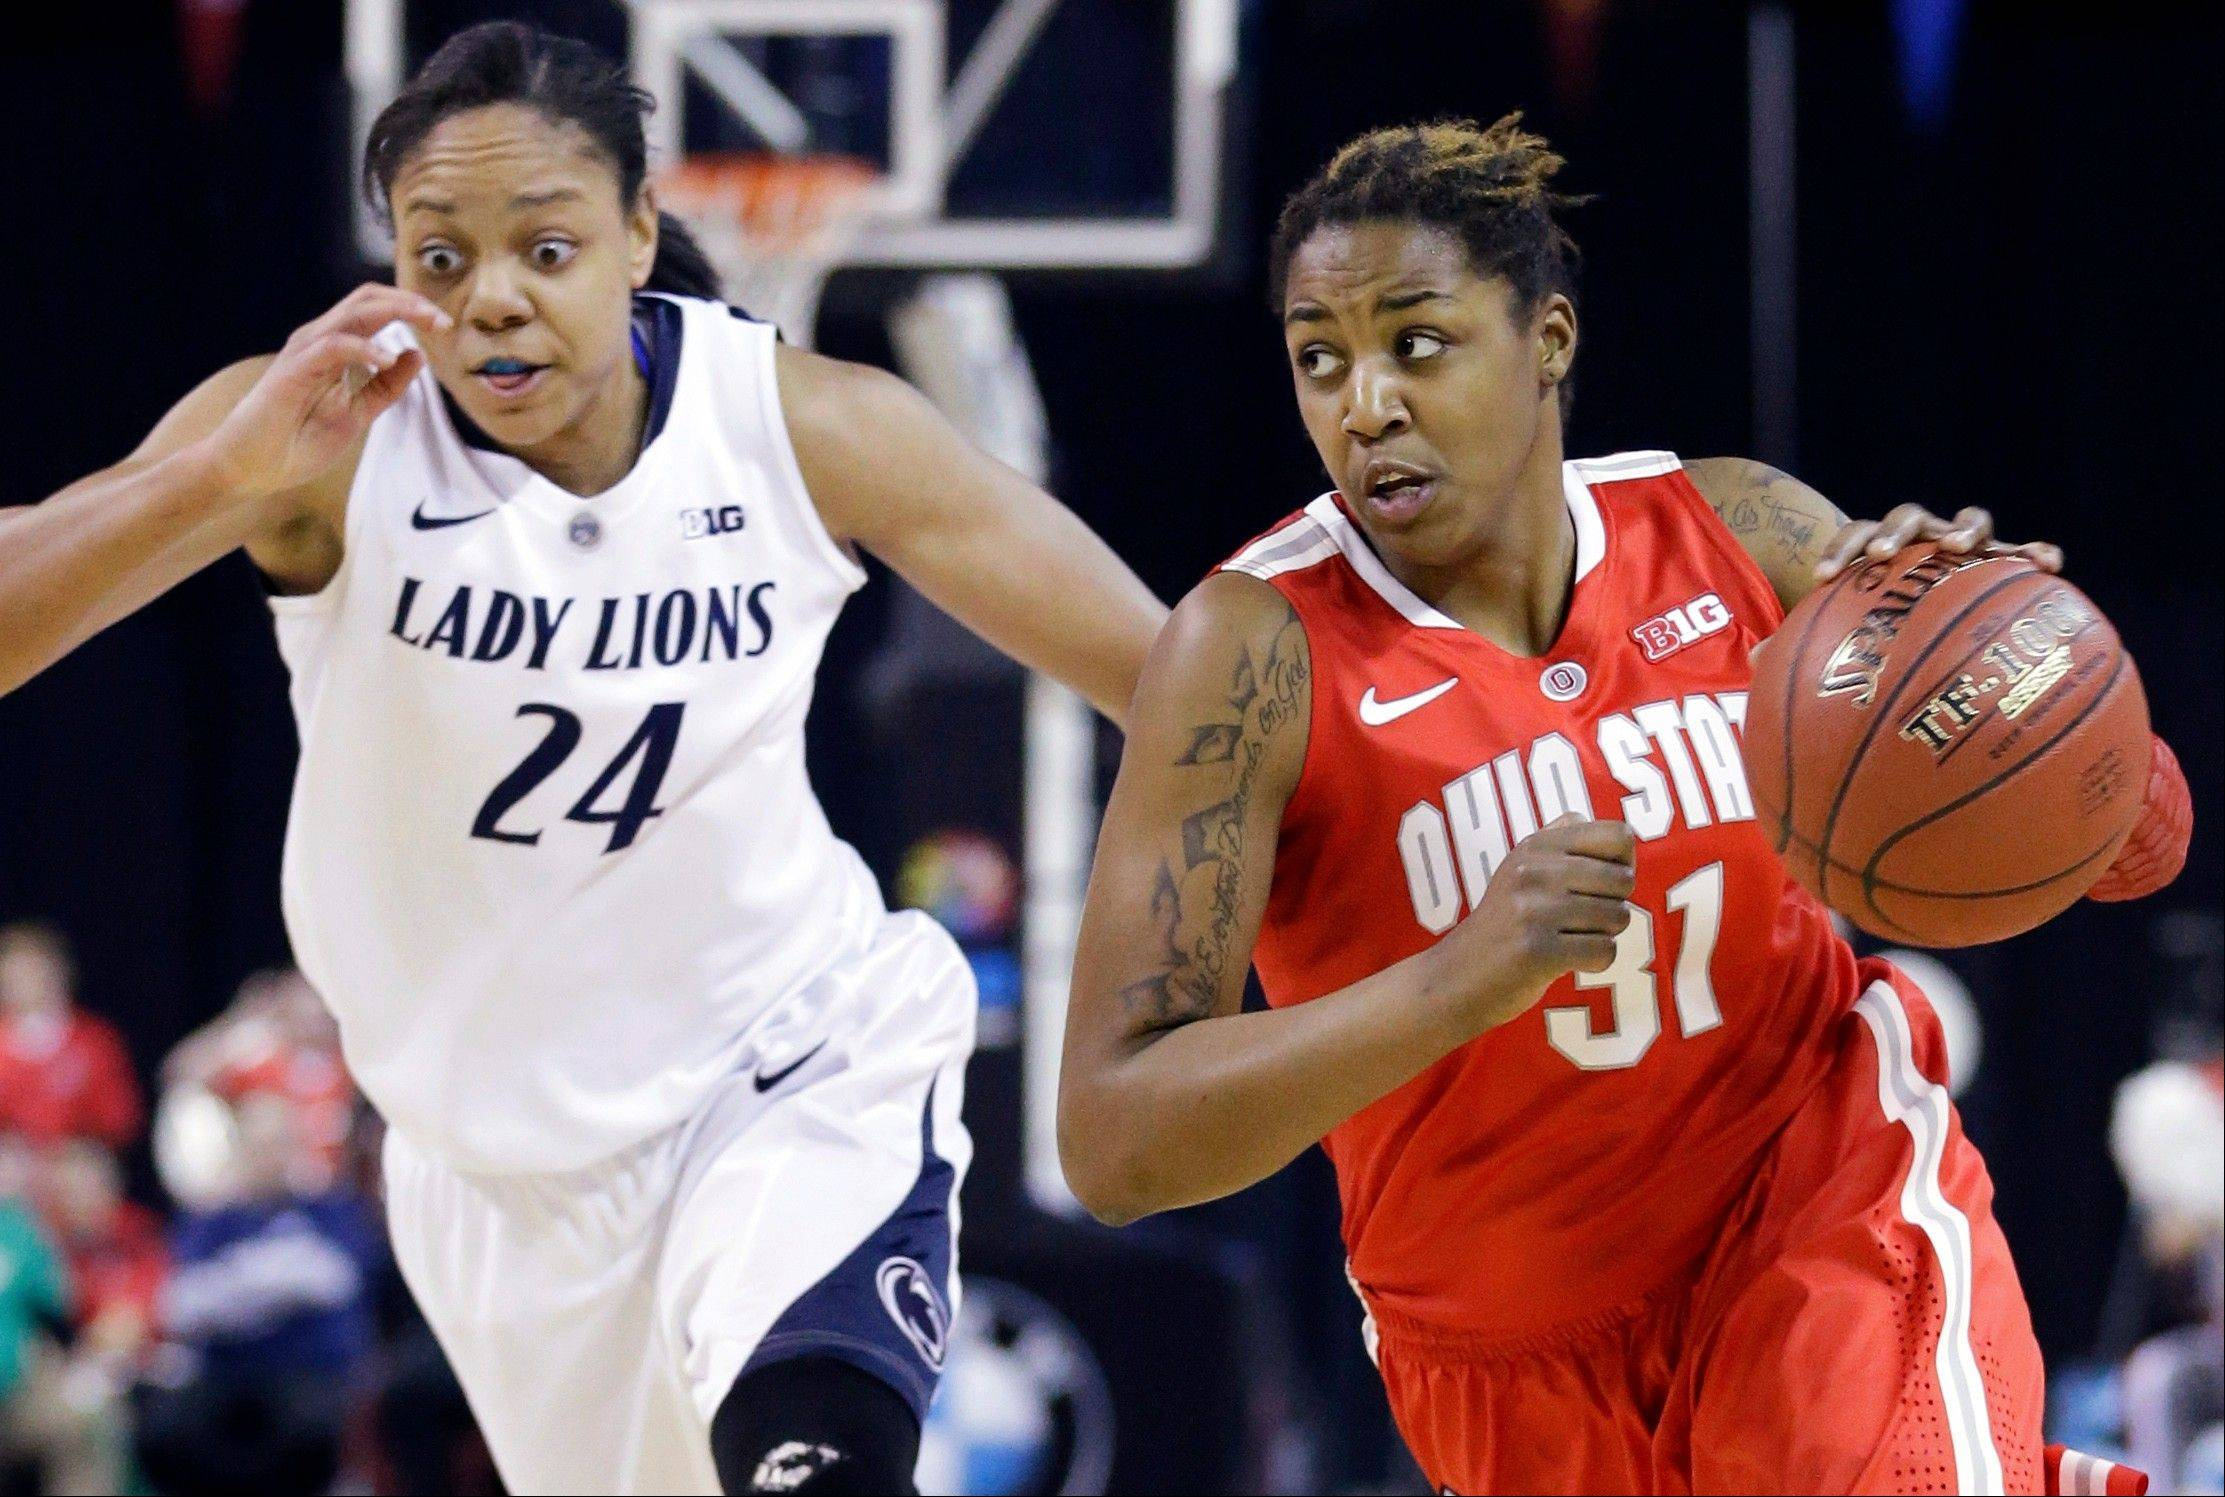 Ohio State guard Raven Ferguson, right, drives as she looks to a pass against Penn State forward Mia Nickson during the first half of an NCAA women's college basketball game in the Big Ten Conference tournament in Hoffman Estates on Friday. Among Big 10 teams, Nickson and the eighth-ranked Nittany Lions probably have the best chance to make a Final Four run this season.